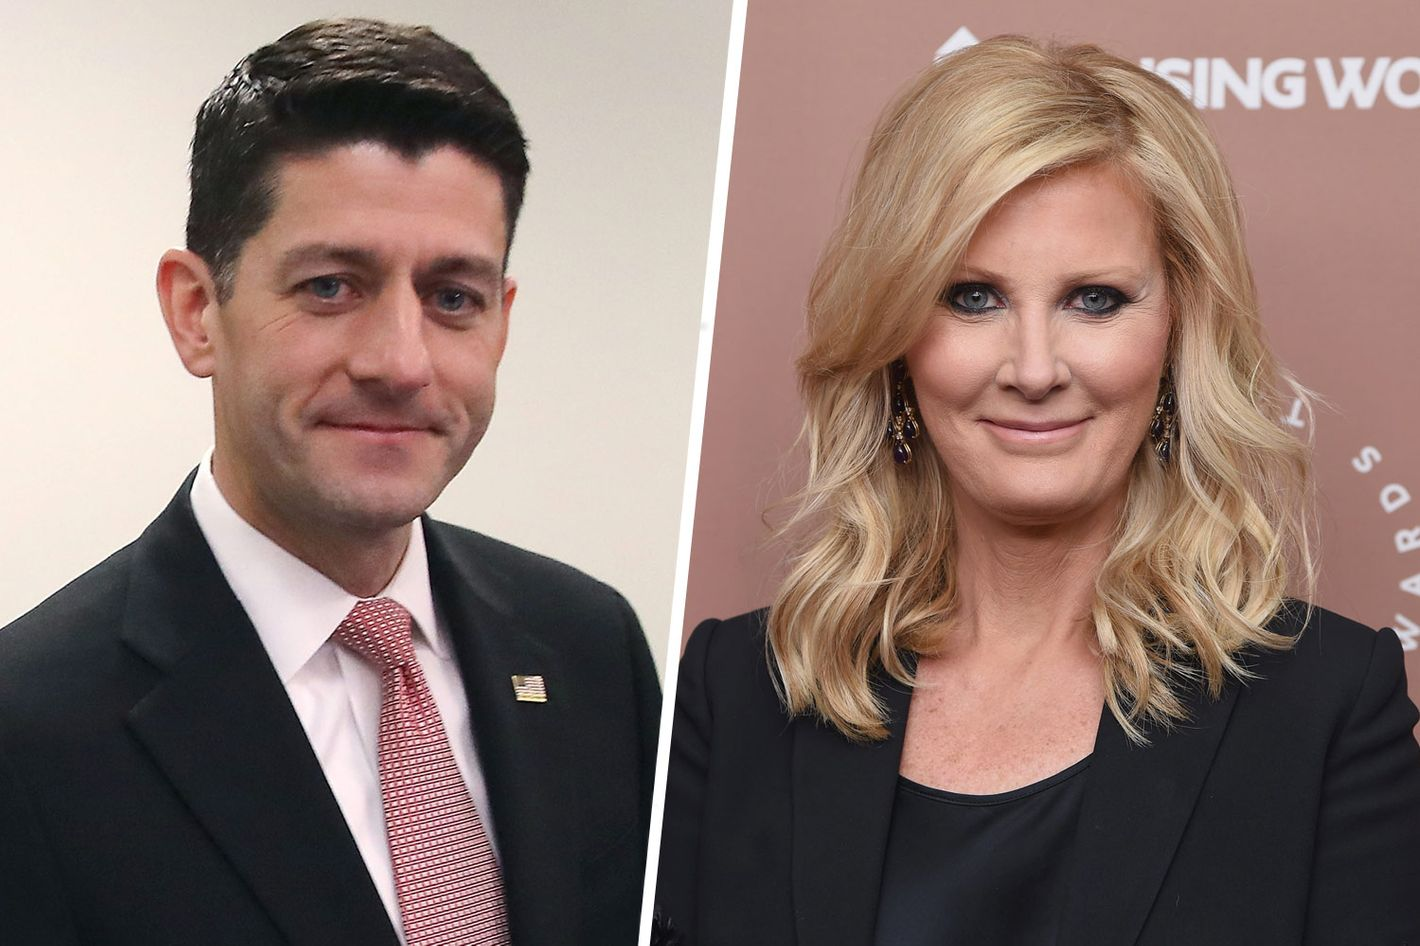 food network star sandra lee reportedly shut down paul ryan